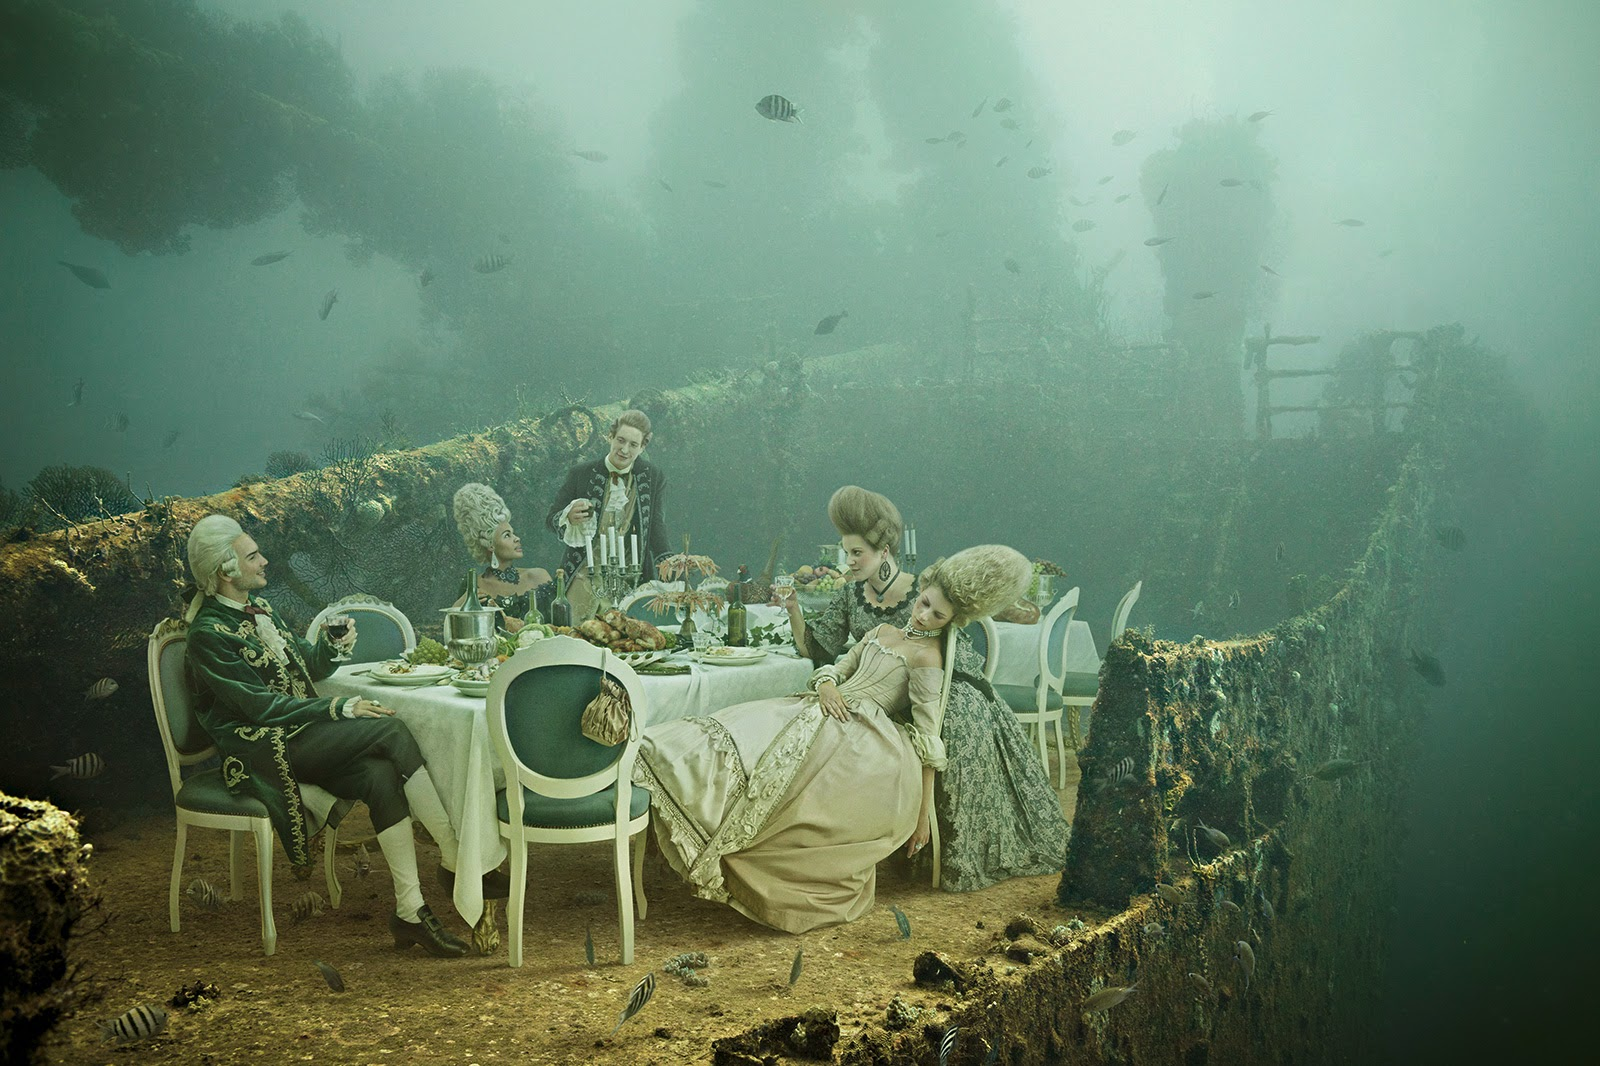 01-Andreas-Franke-Surreal-Artificial-Reef-Photography-www-designstack-co